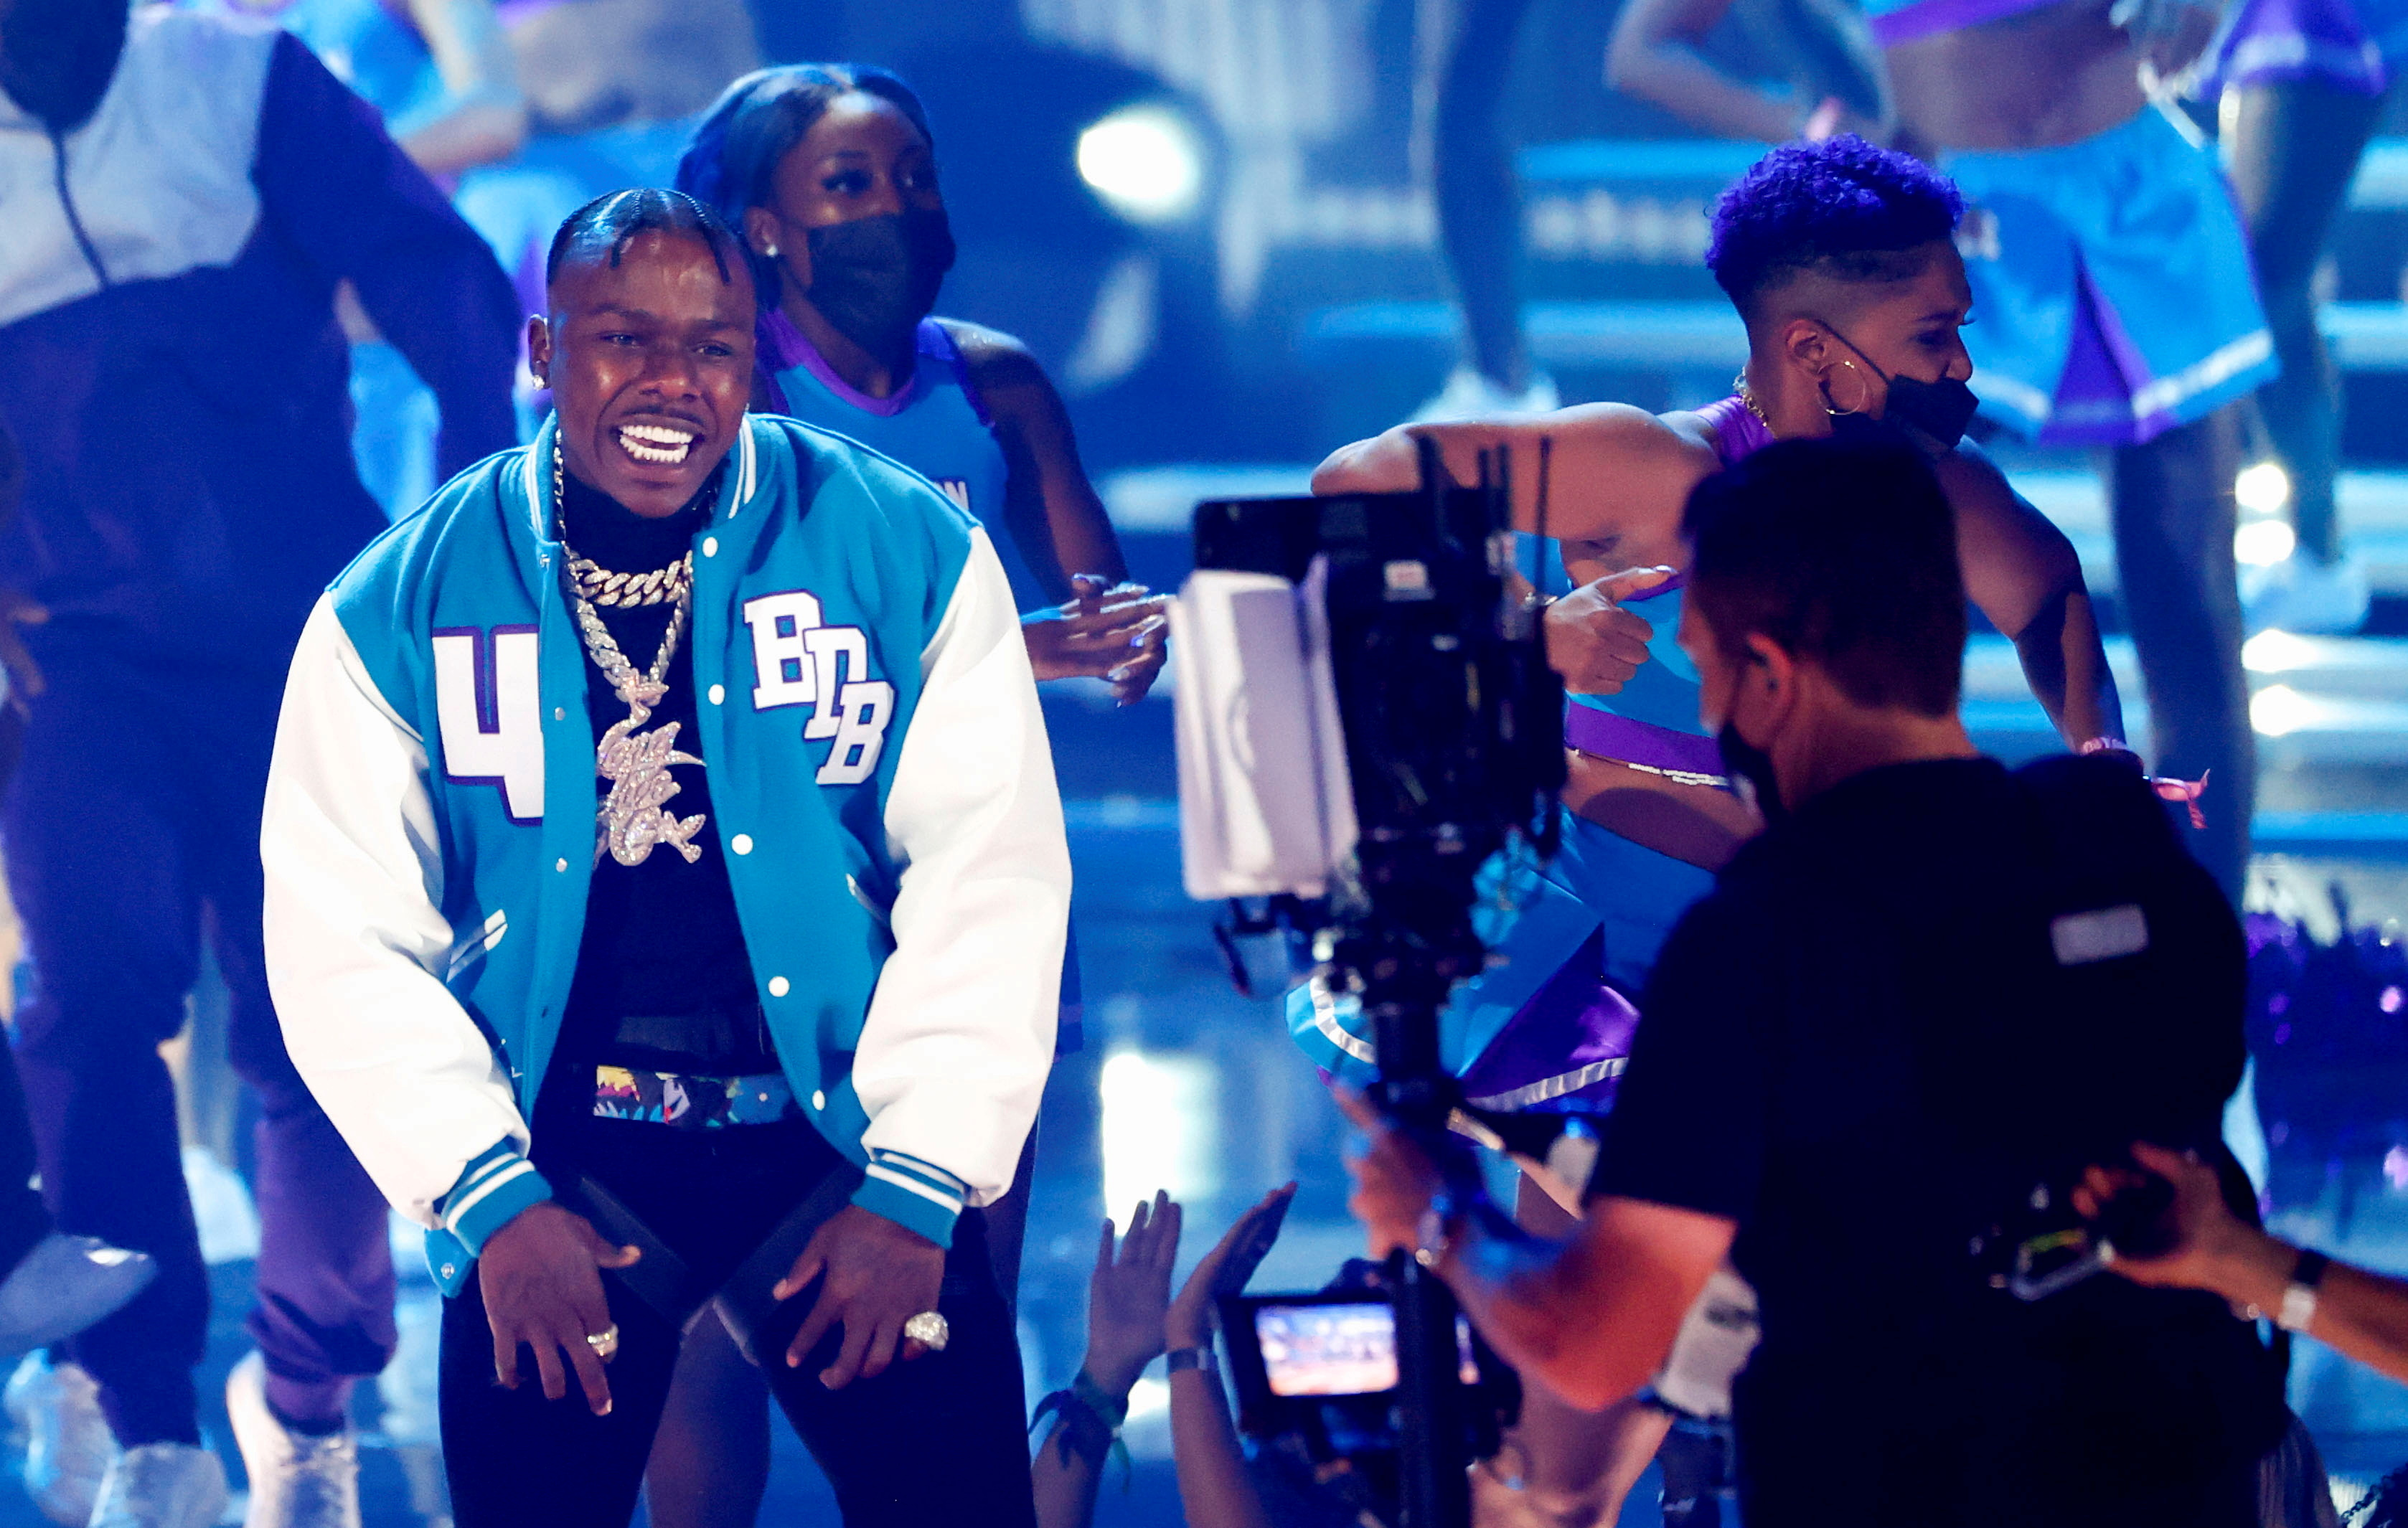 DaBaby performs during the BET Awards at Microsoft theatre in Los Angeles, California, U.S., June 27, 2021. REUTERS/Mario Anzuoni